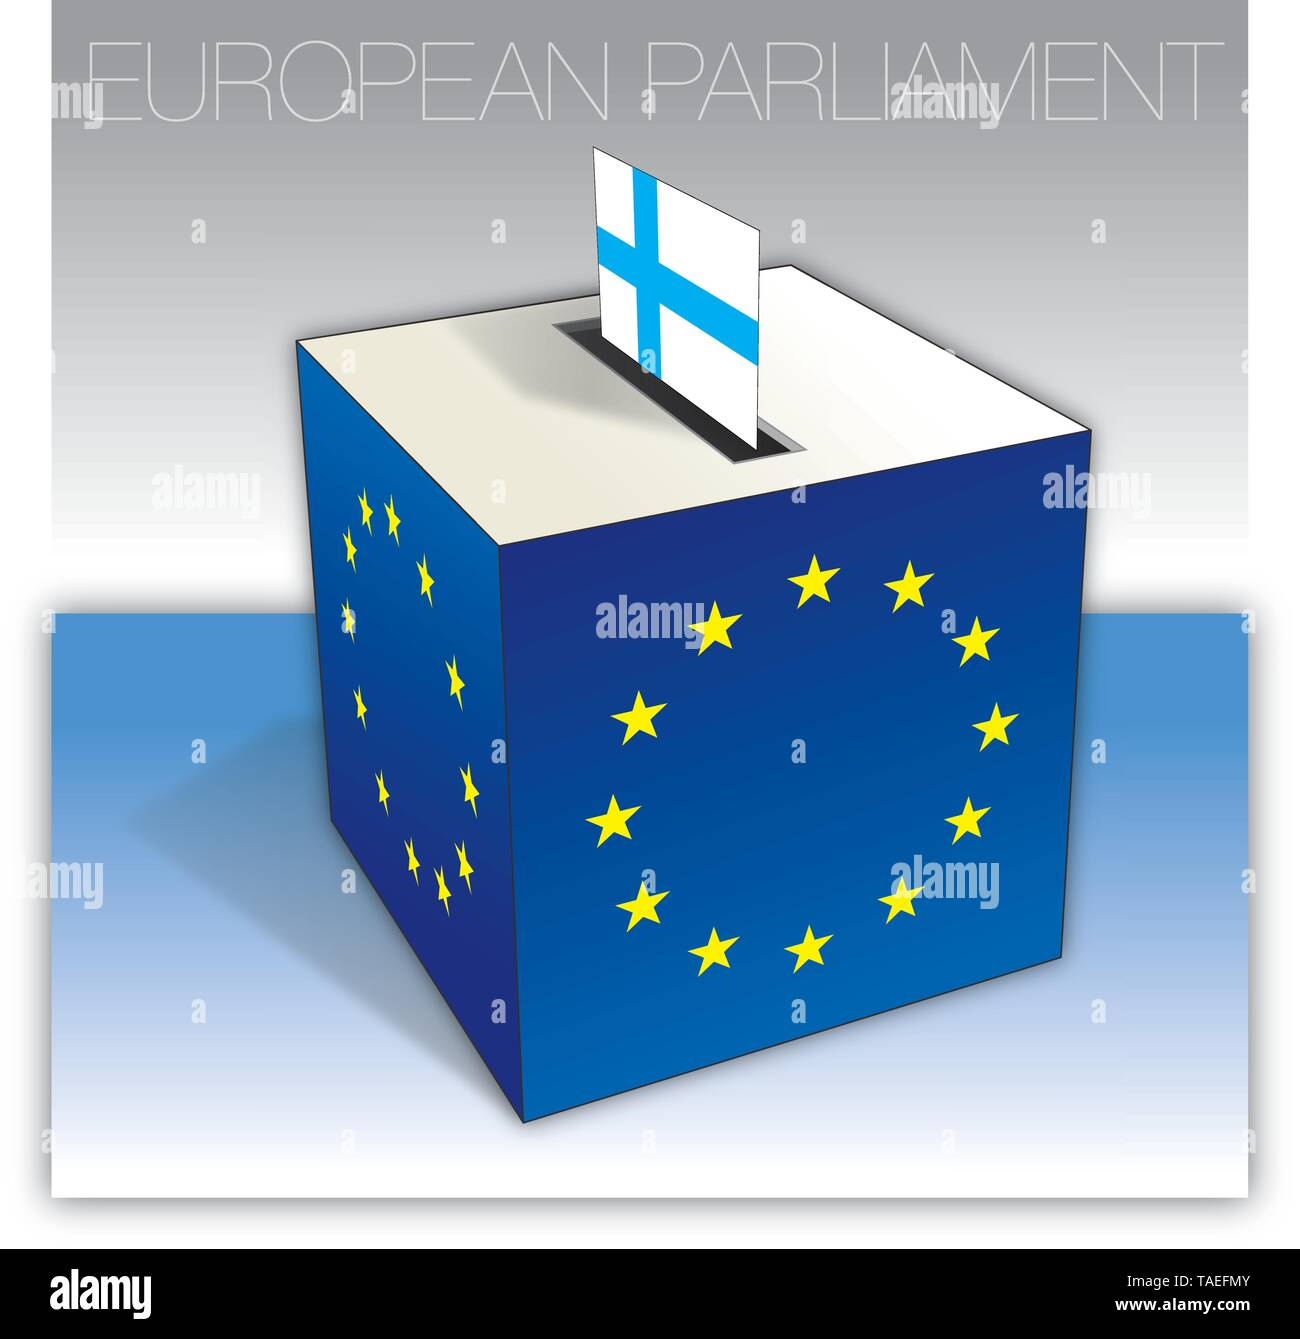 Finland voting box, European parliament elections, flag and national symbols, vector illustration - Stock Image